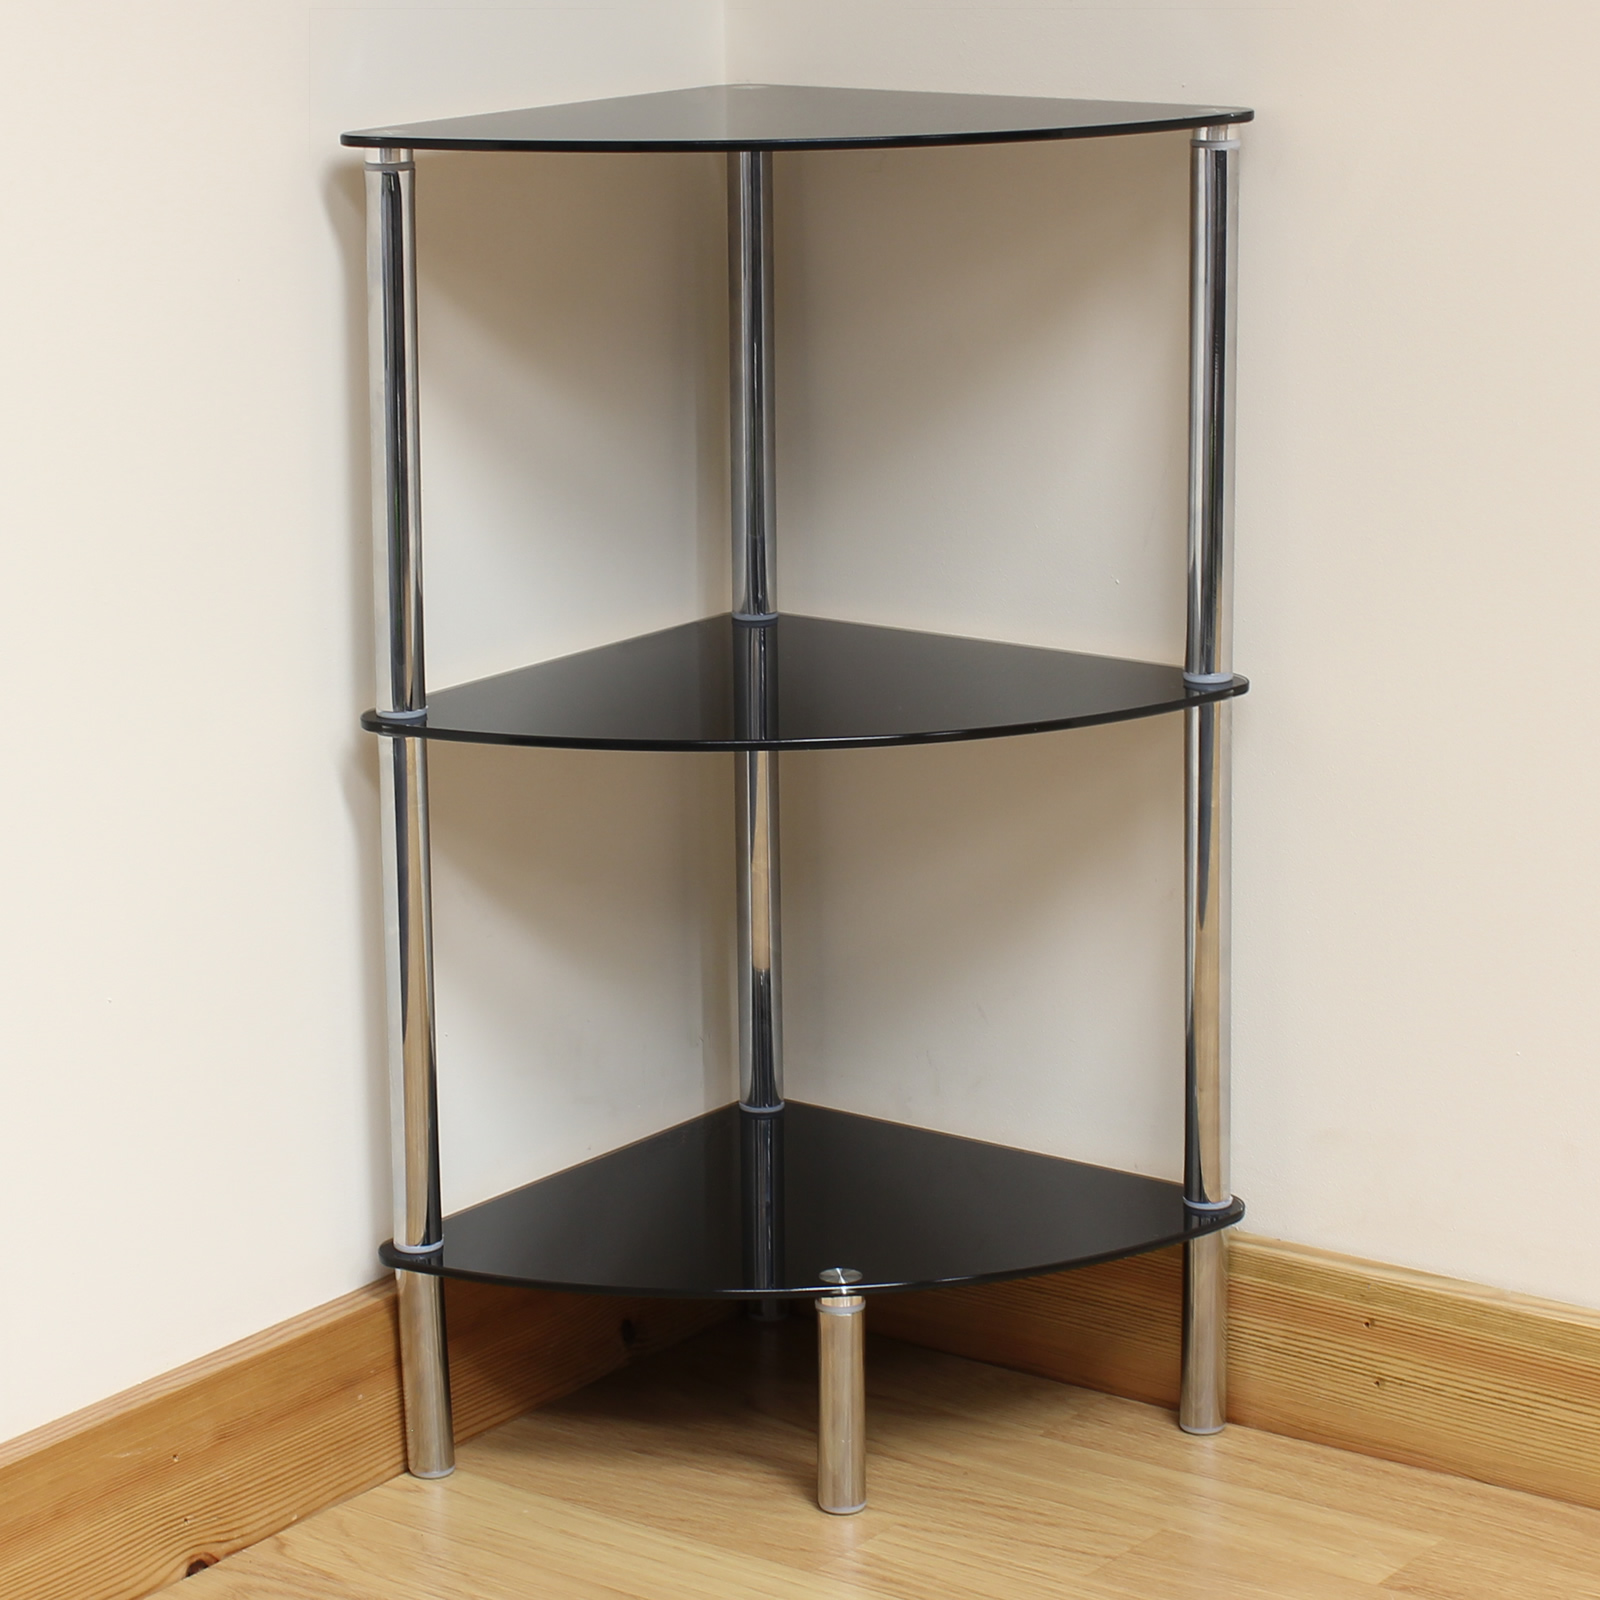 Sentinel Hartleys 3 Tier Black Glass Corner Side/End Table Shelf/Display  Unit Lounge/